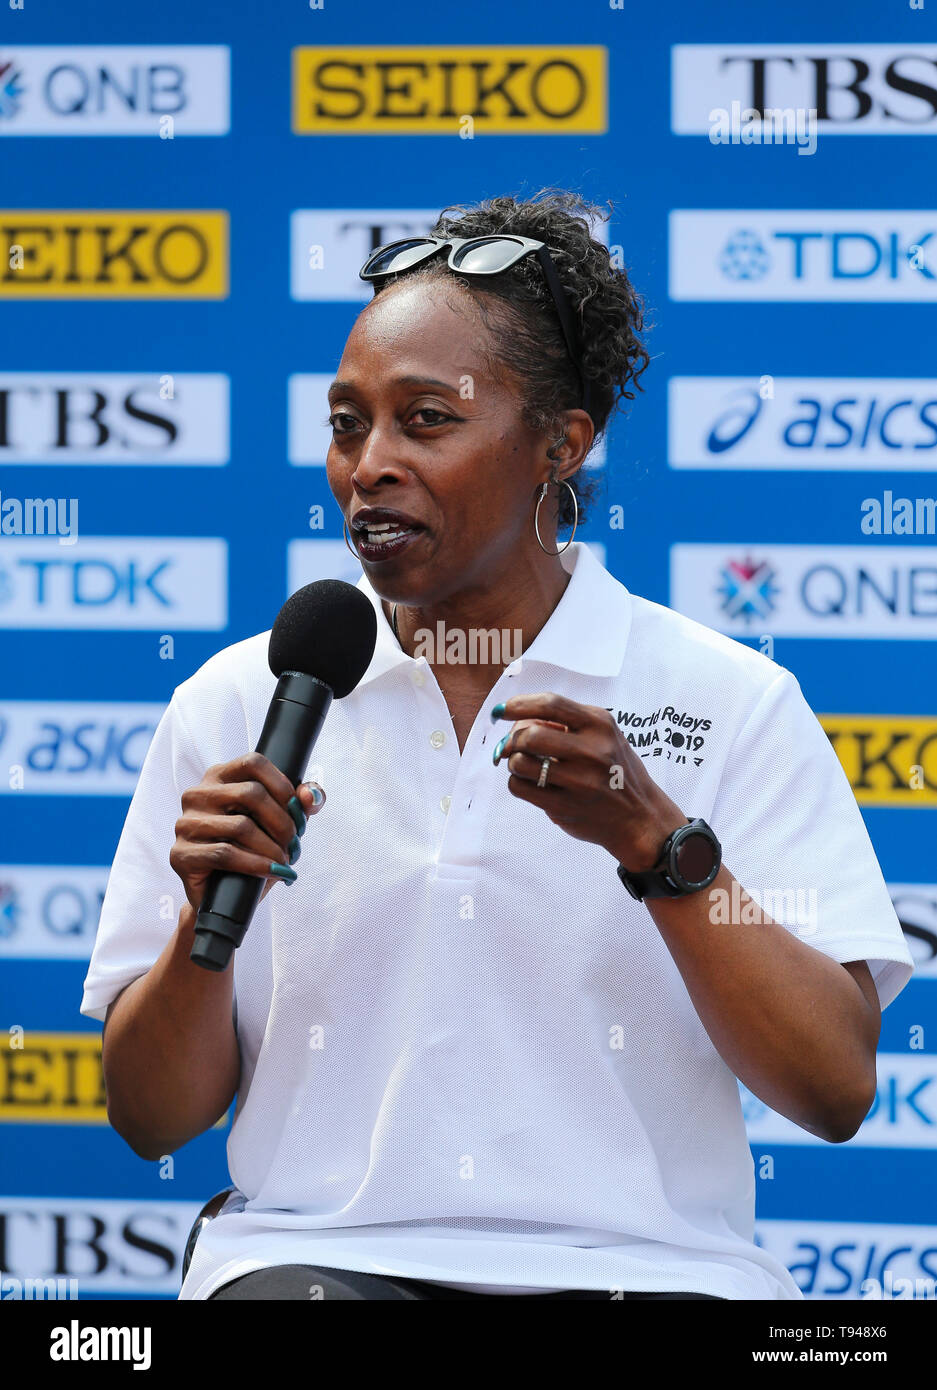 YOKOHAMA, JAPAN - MAY 10: Gail Devers, IAAF Ambassador, during the official press conference of the 2019 IAAF World Relay Championships at the Nissan Stadium on May 10, 2019 in Yokohama, Japan. (Photo by Roger Sedres for the IAAF) - Stock Image